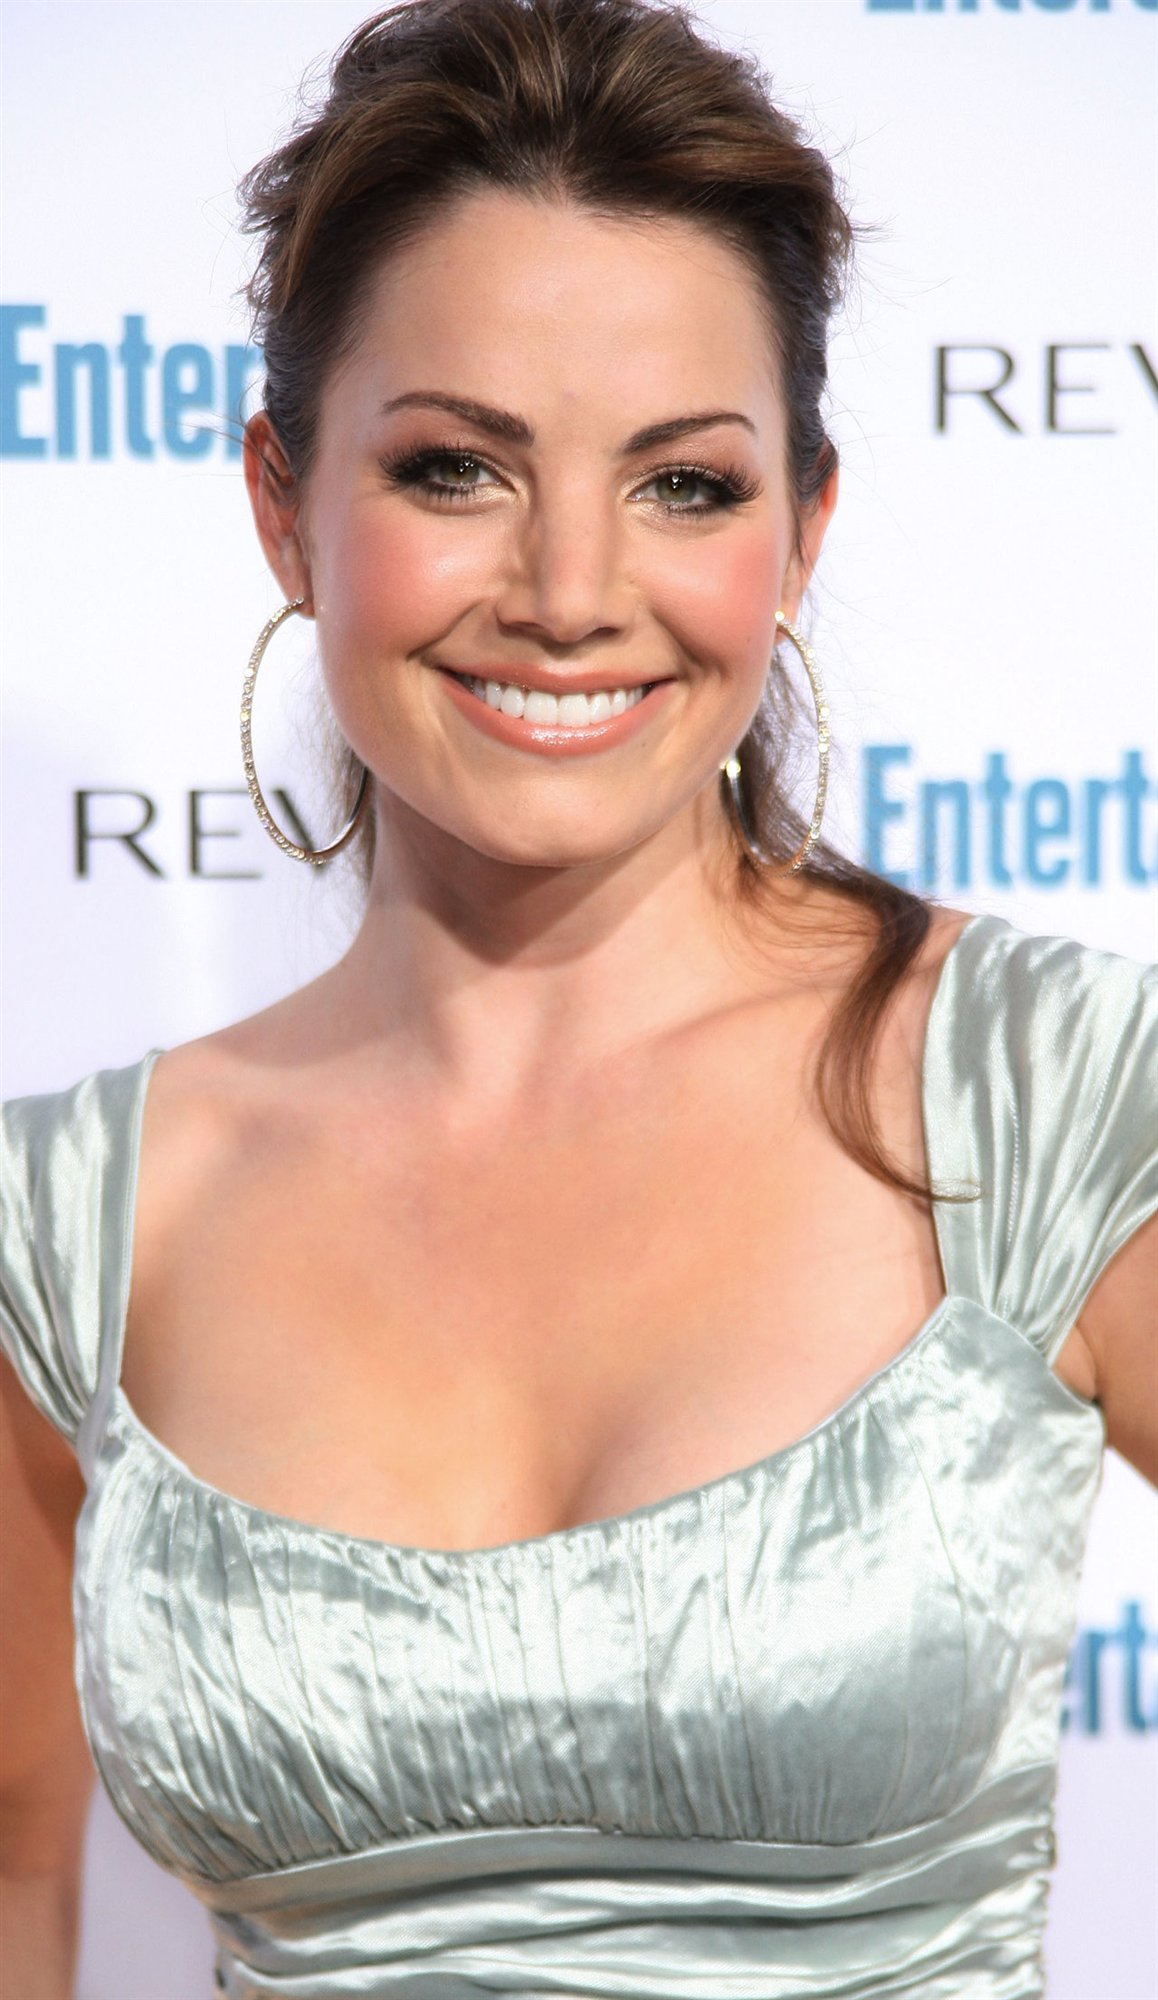 Fashion Erica Durance wallpapers (1155)